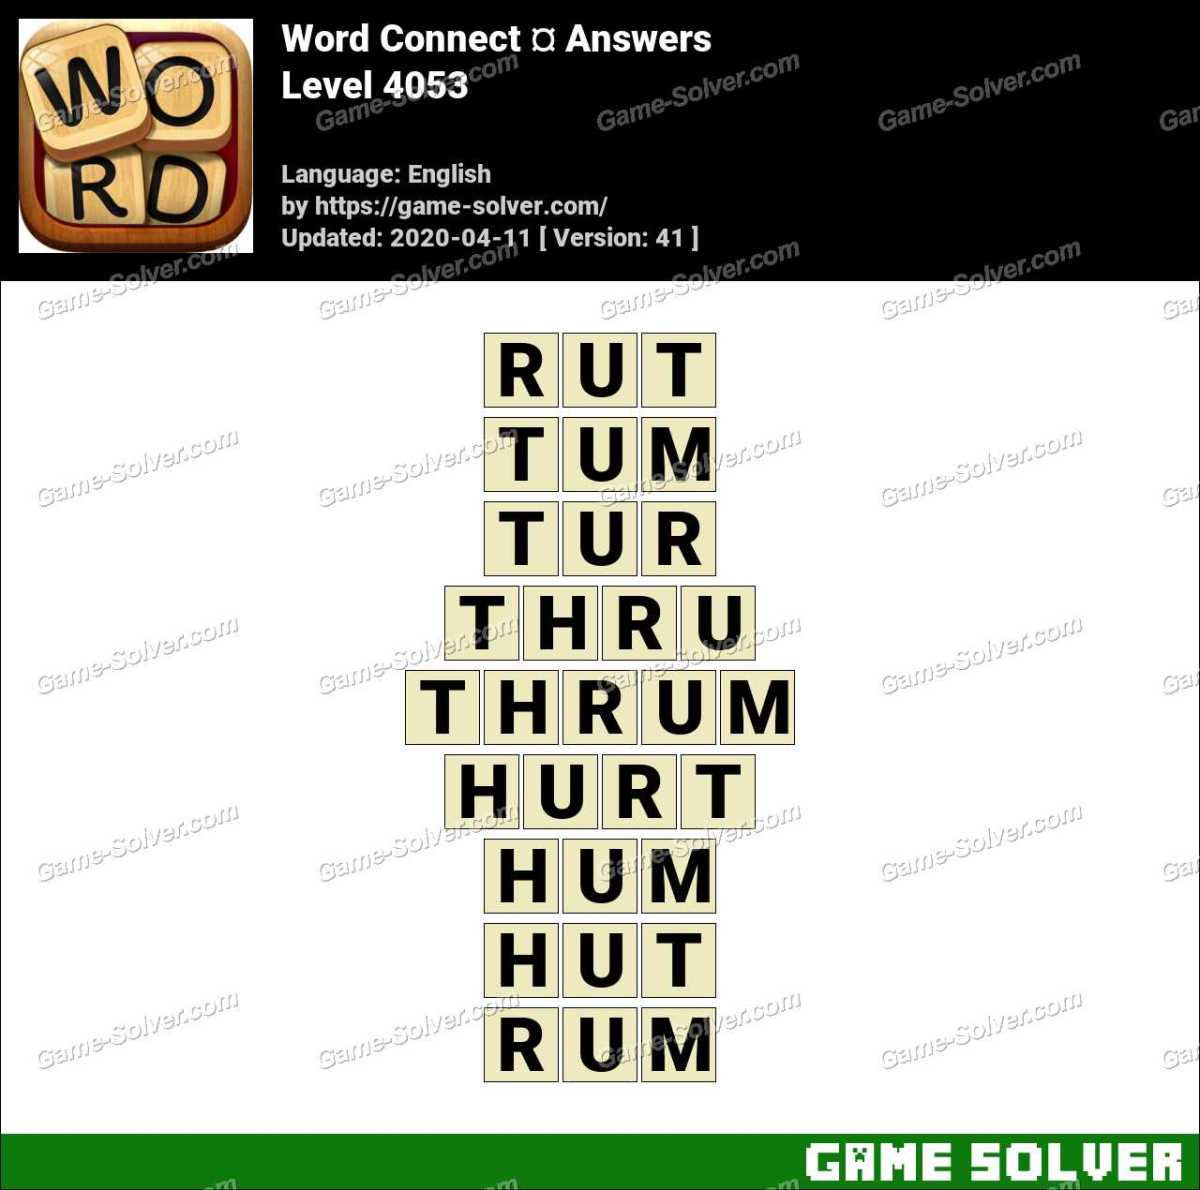 Word Connect Level 4053 Answers